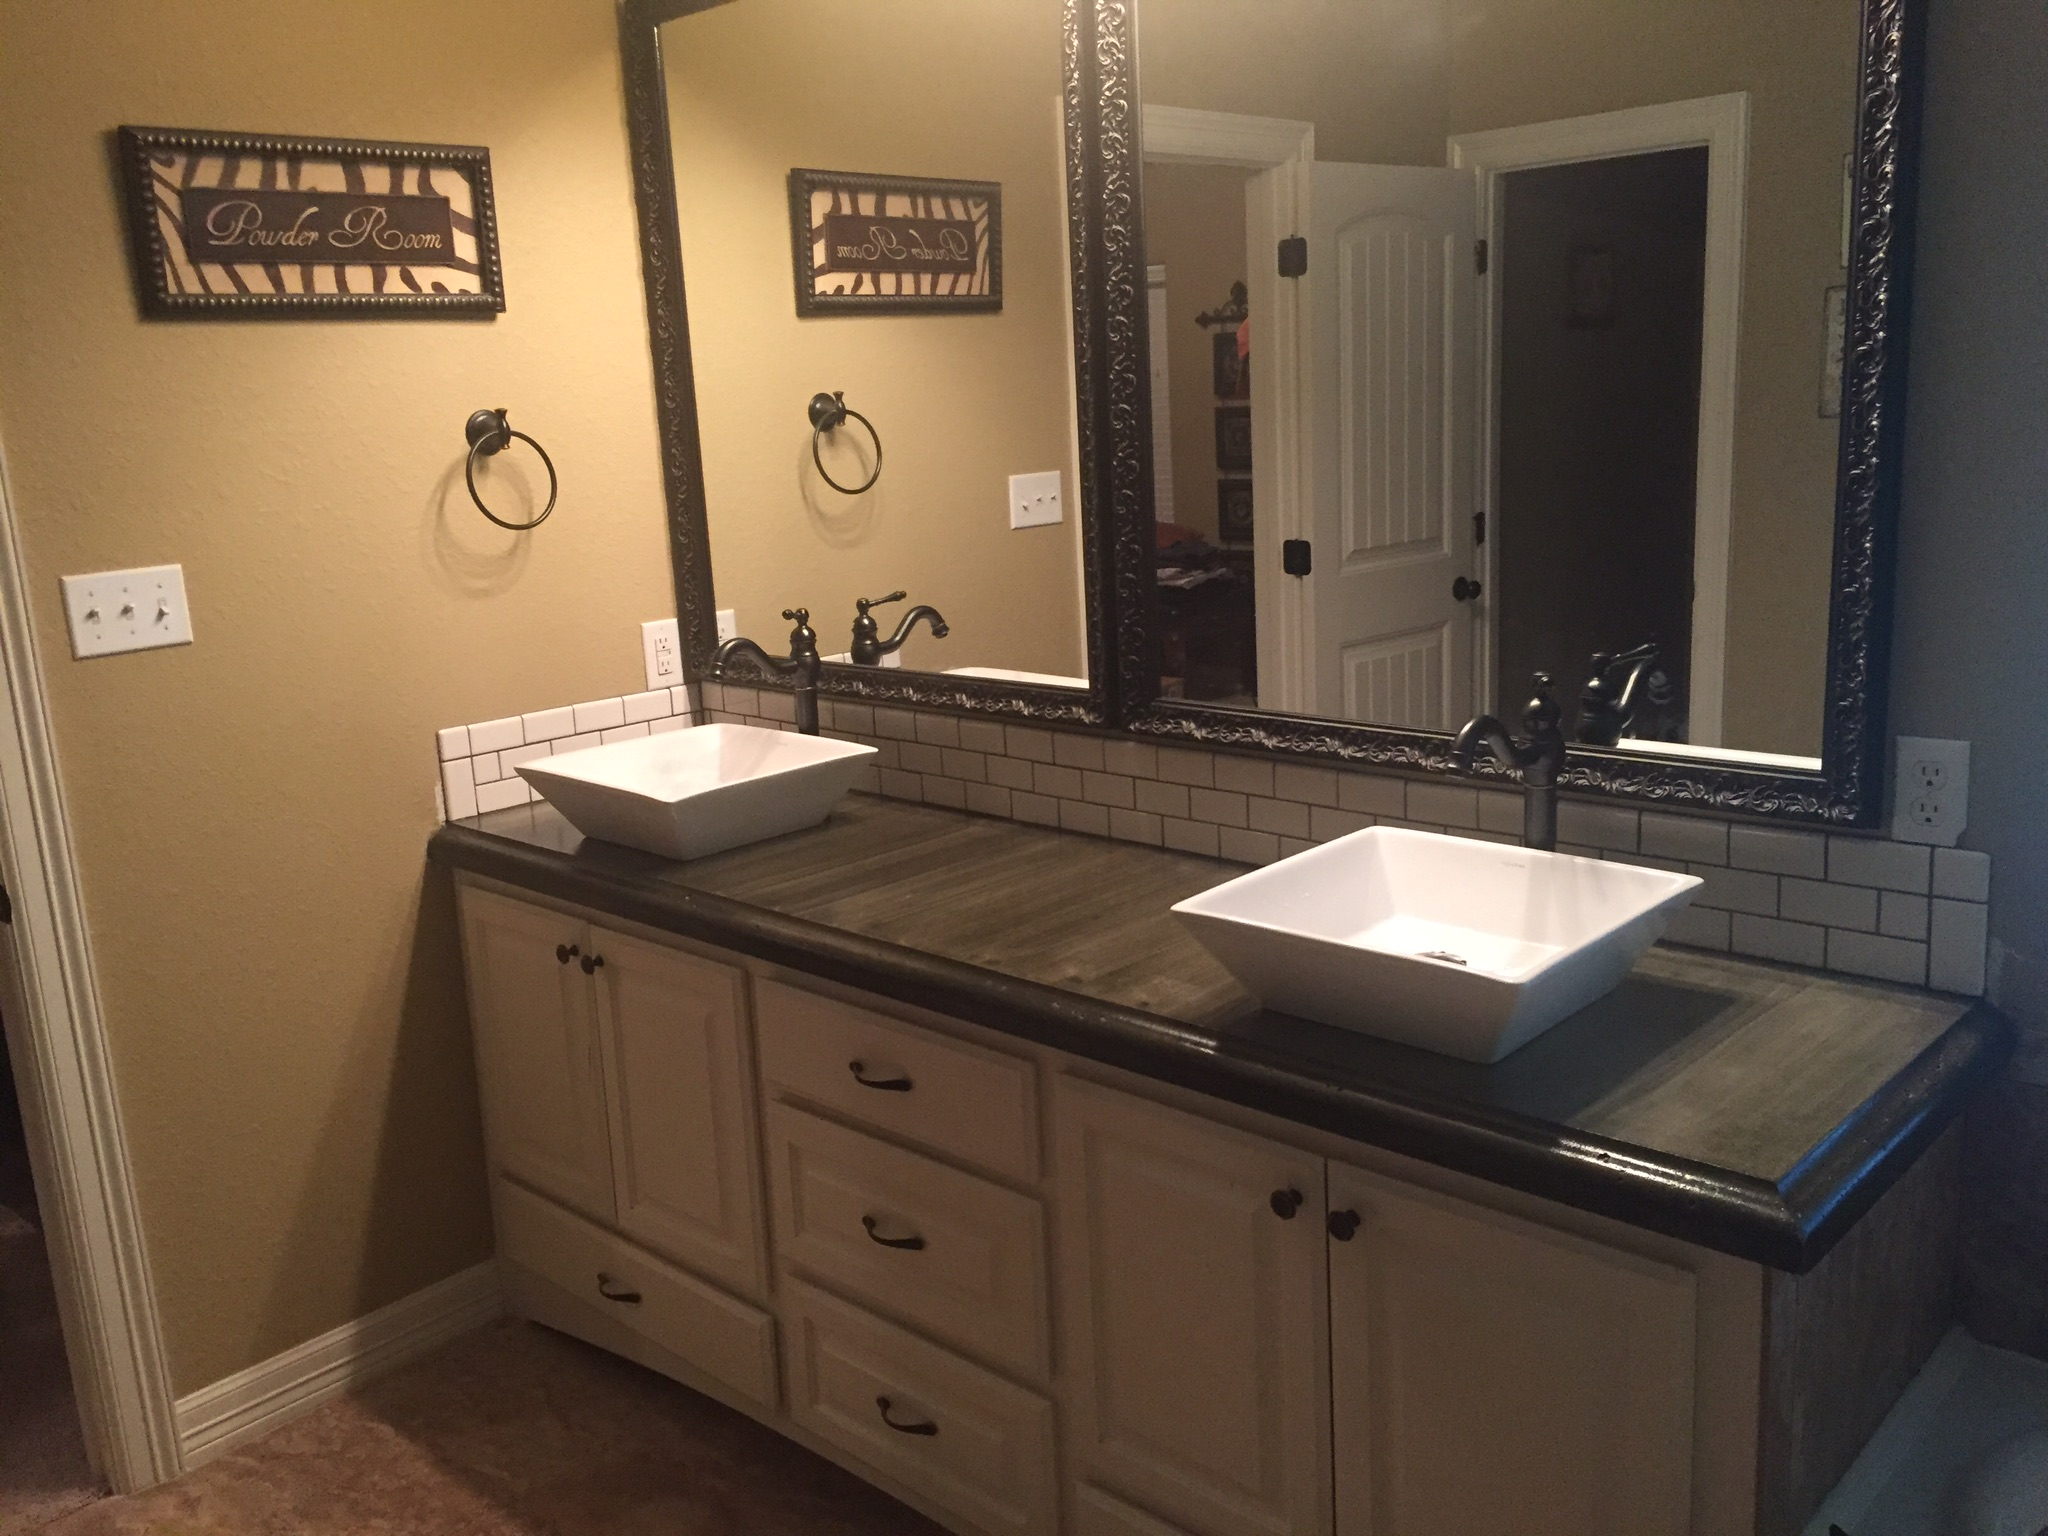 and center of remodel awesome san photos franciscocountertop concrete yk styles edges types countertops files picture best denver different stone concept bathroom